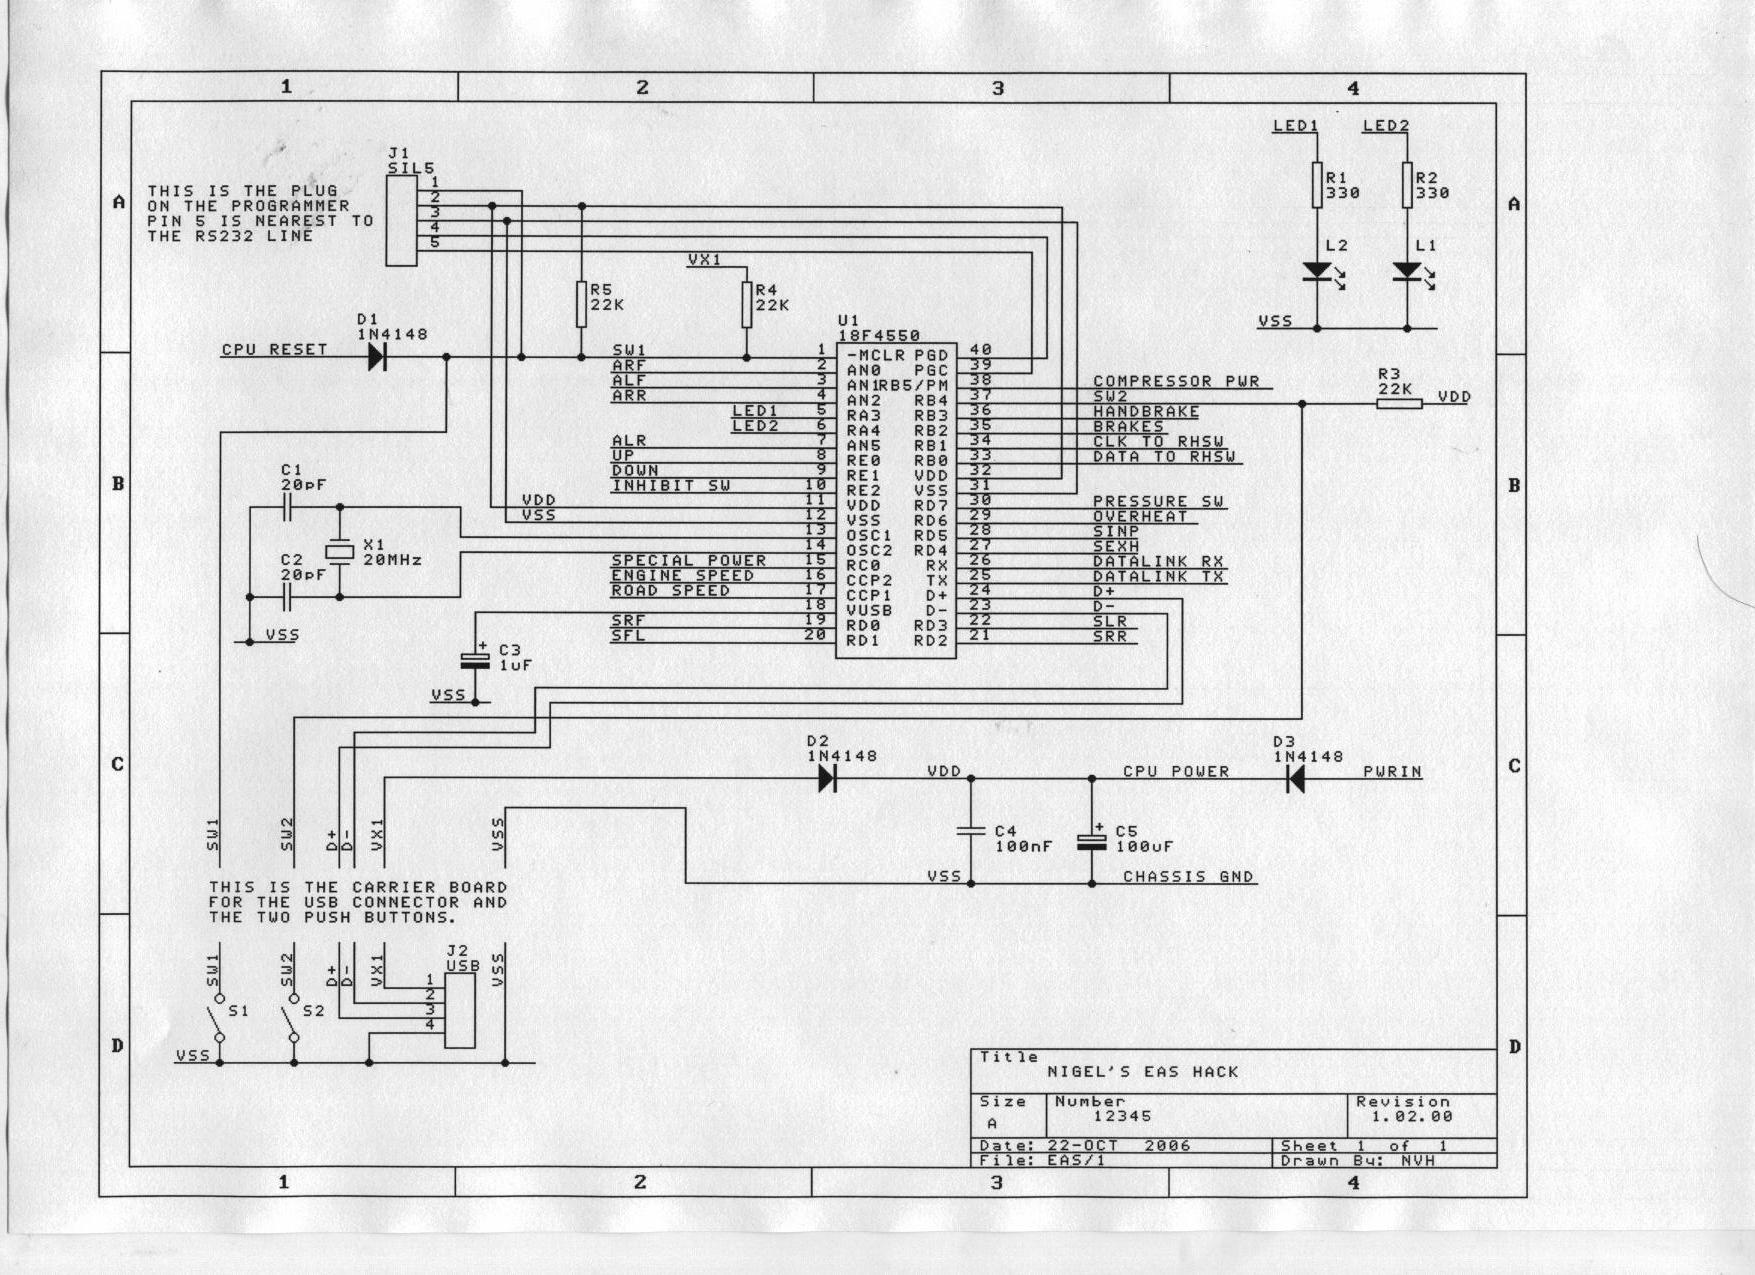 Old Air Ride Wiring Schematic - Wiring Schematics Range Rover Clic Wiring Diagram Pdf on